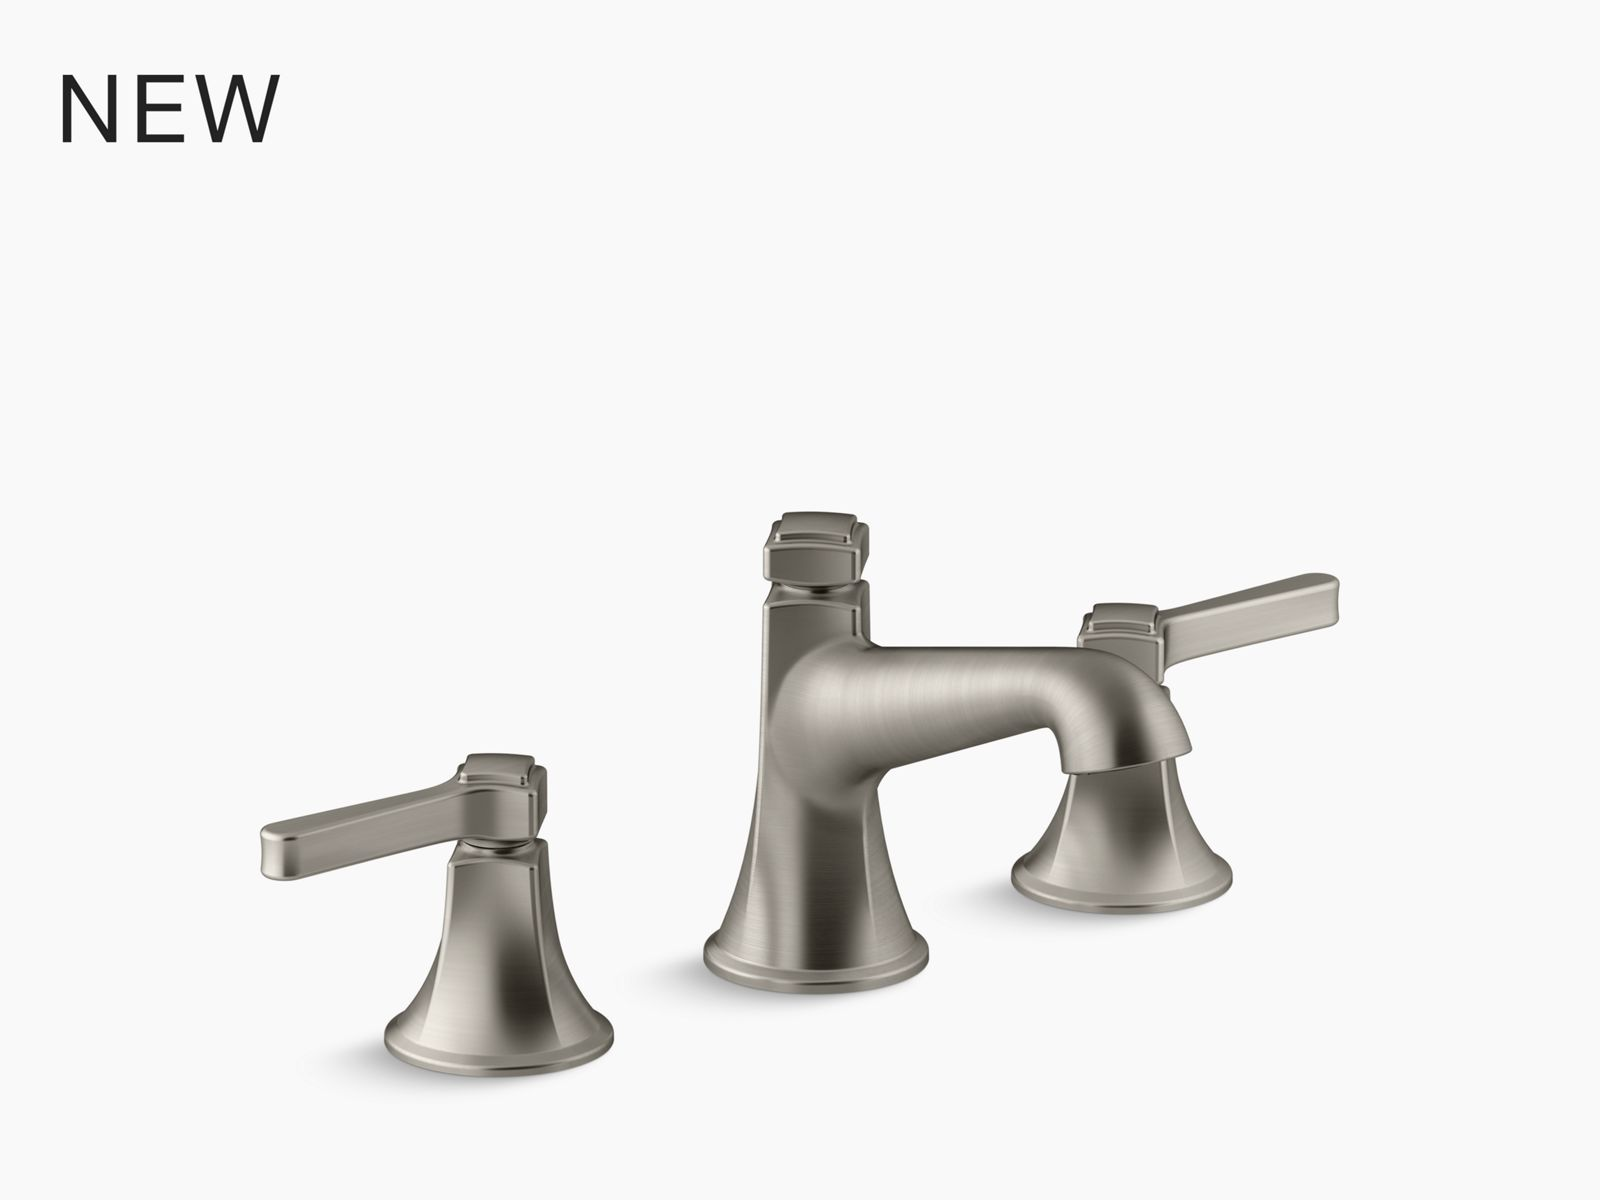 triton bowe 1 5 gpm kitchen sink faucet with 9 5 16 gooseneck spout matching finish sidespray aerated flow and lever handles